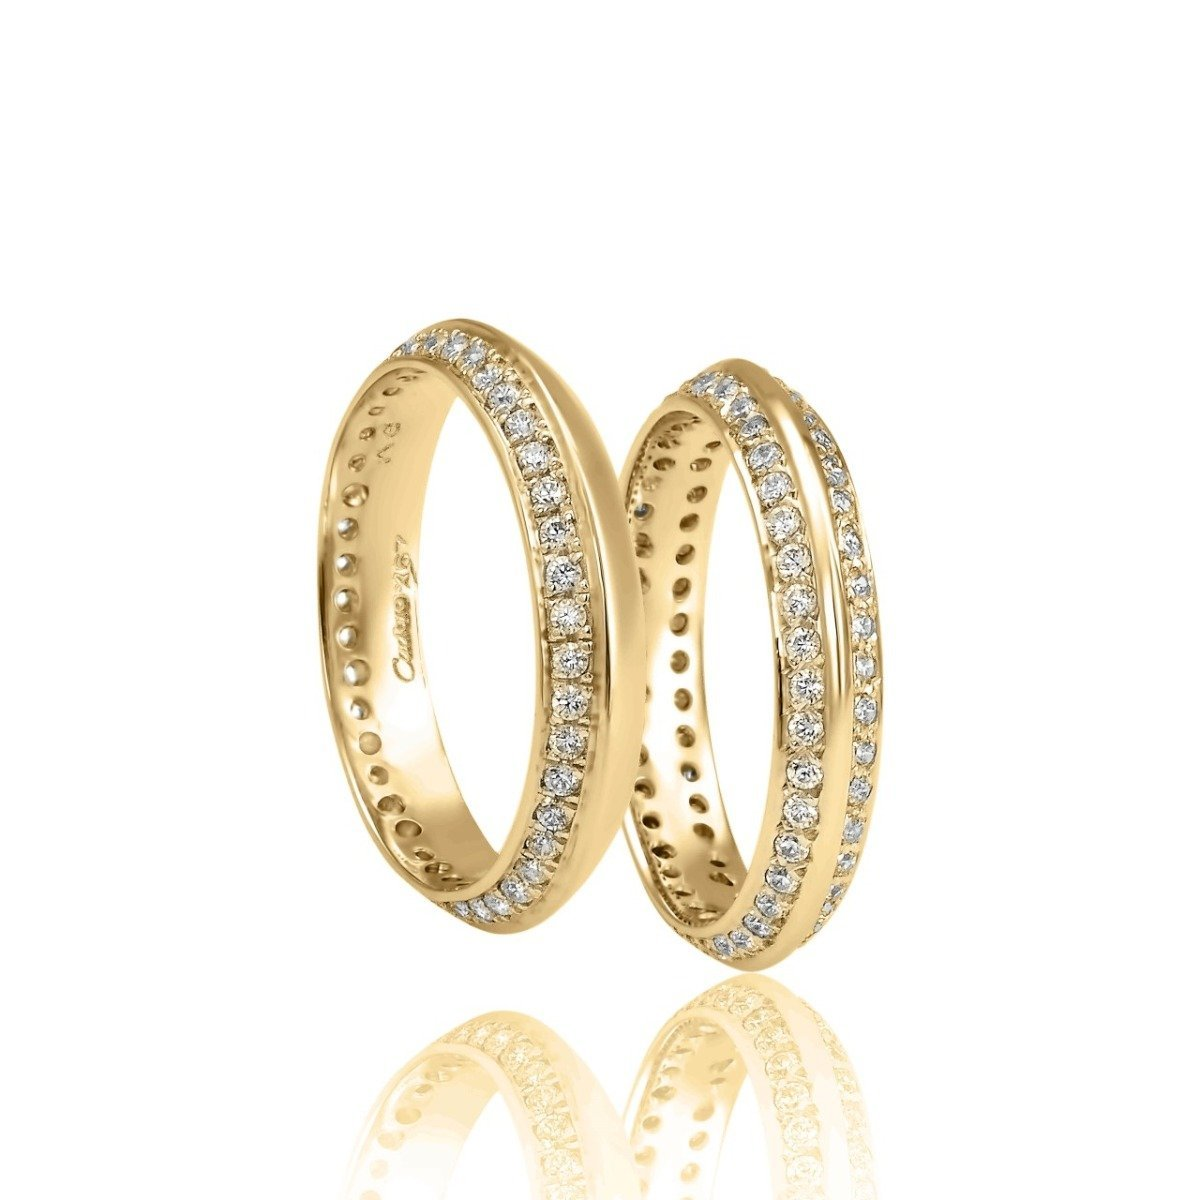 FaCad'oro WR-17PB2 14ct Gold Wedding Ring - Goldy Jewelry Store